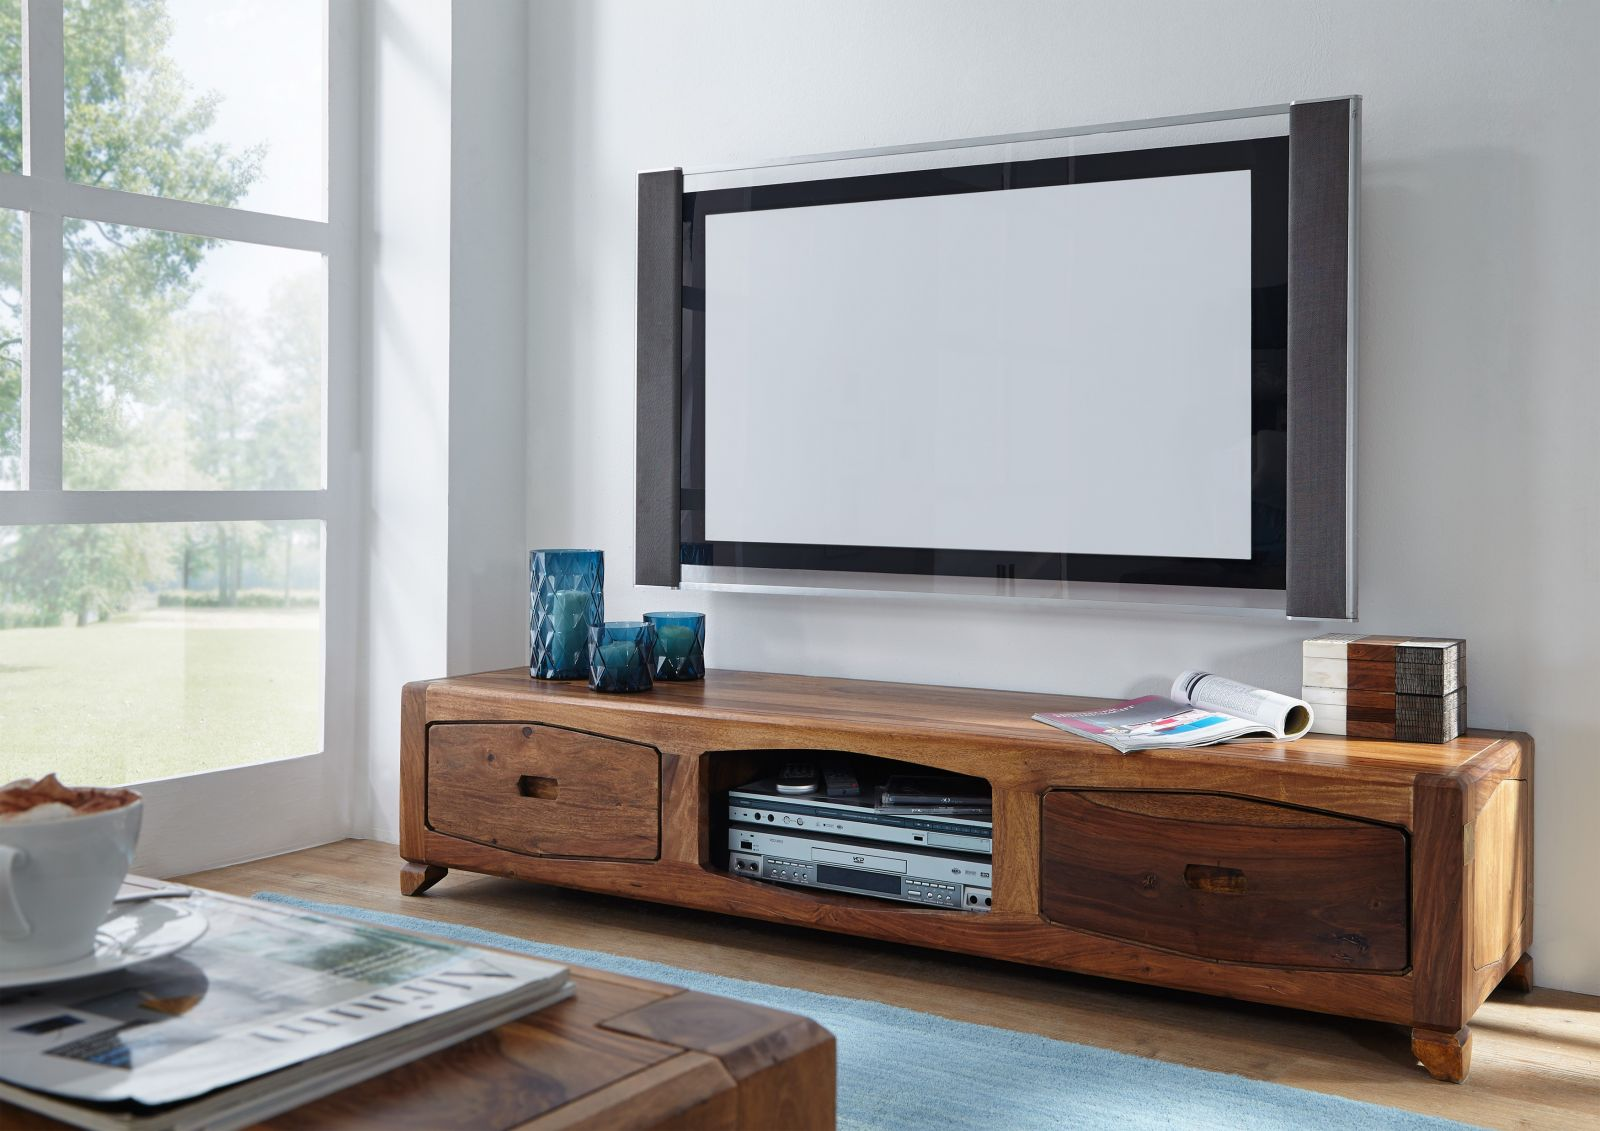 massivholz tv board sheesham palisander ancona 107 ebay. Black Bedroom Furniture Sets. Home Design Ideas